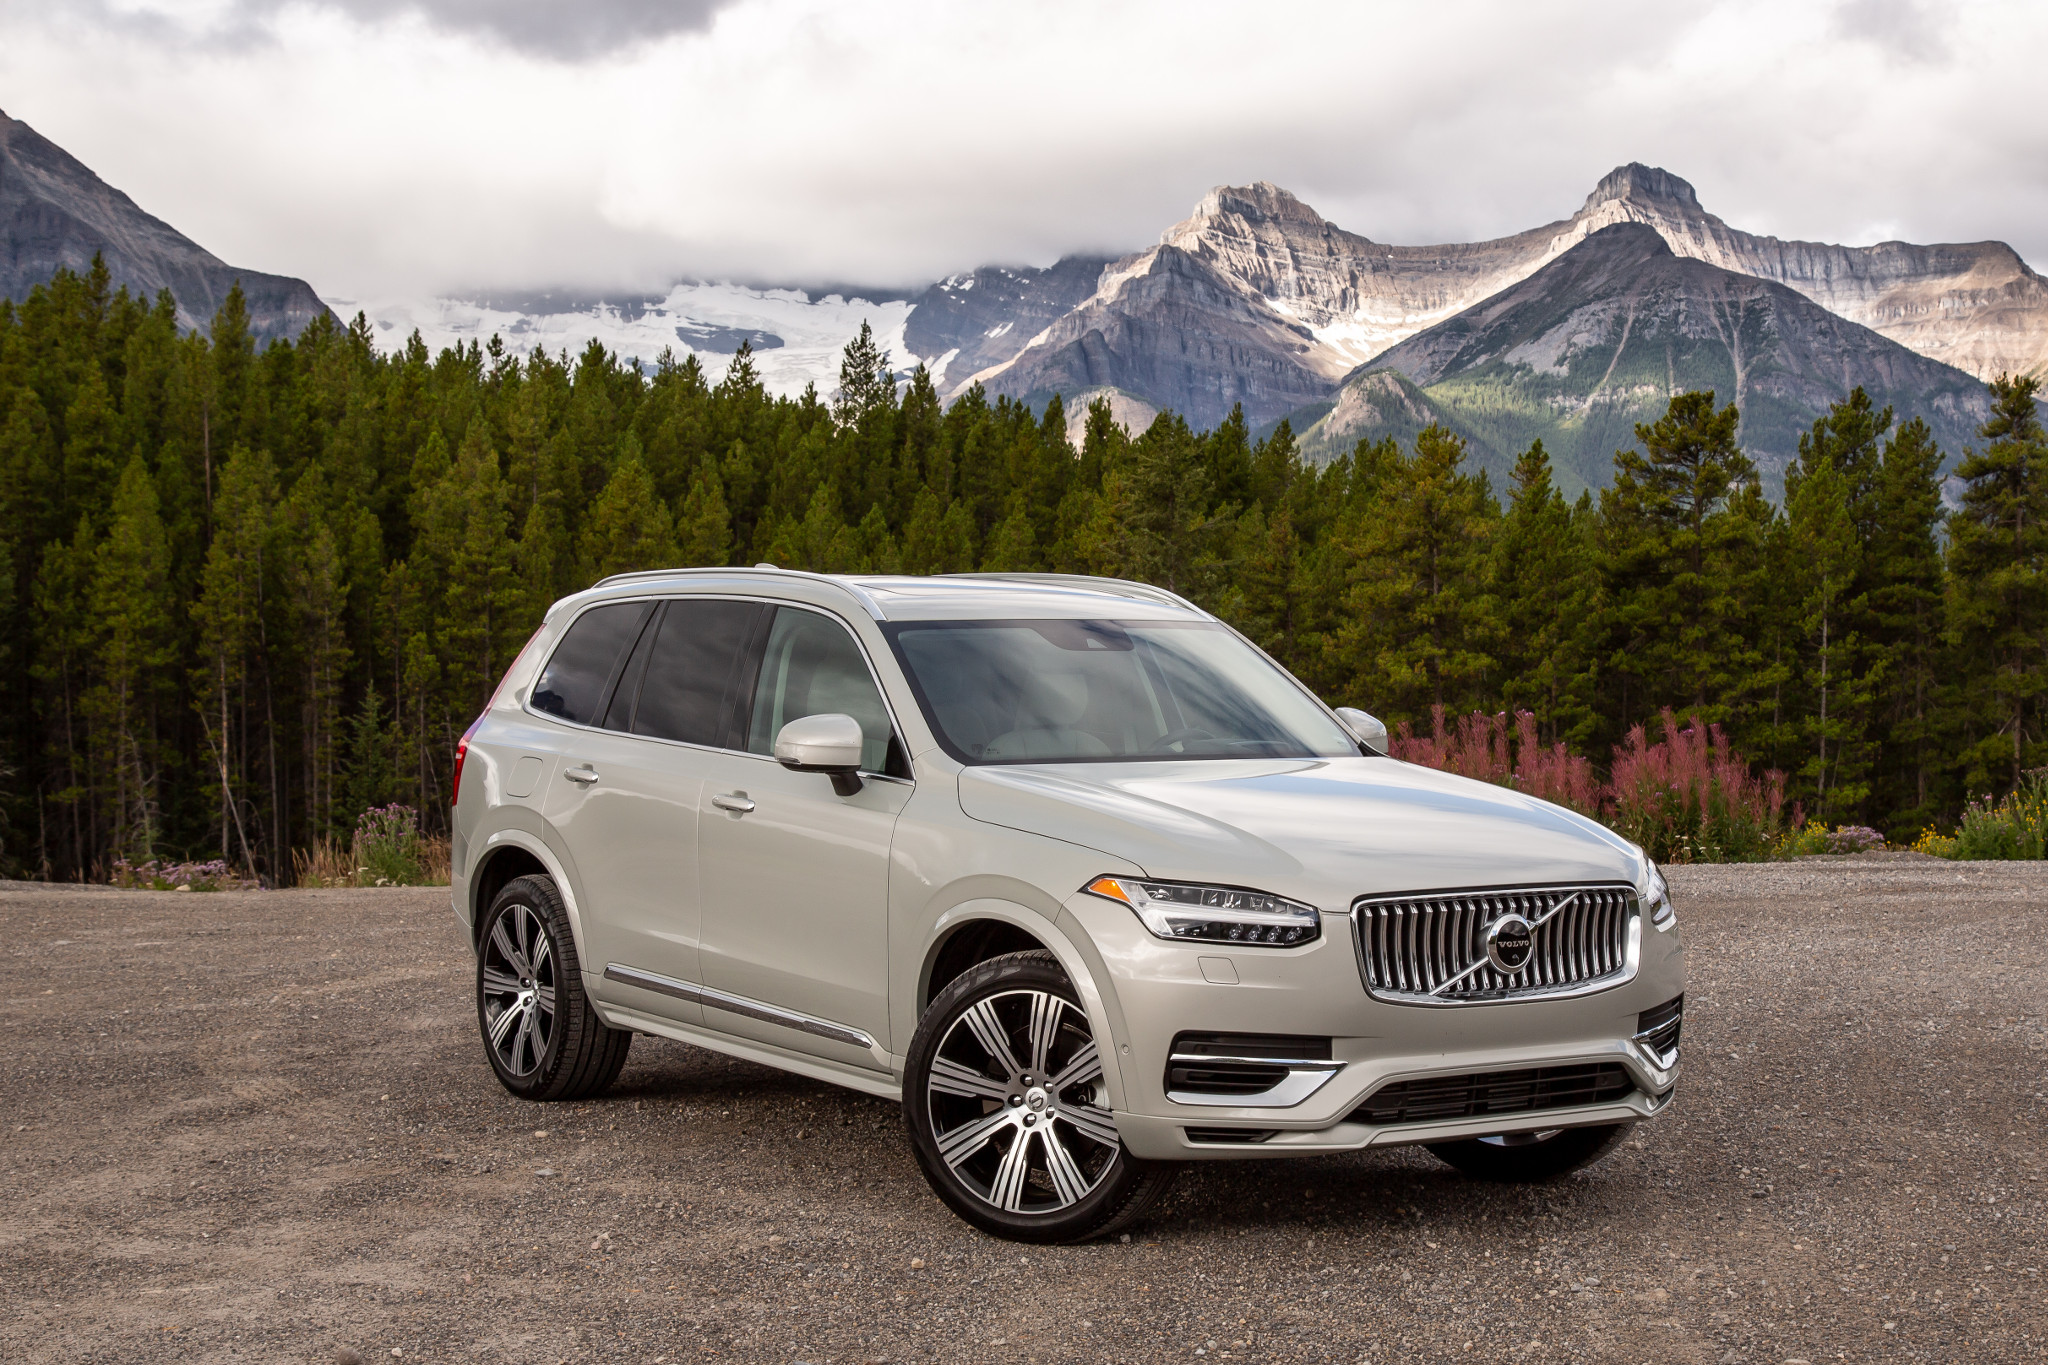 32 Gallery of When Does 2020 Volvo Xc90 Come Out Model with When Does 2020 Volvo Xc90 Come Out